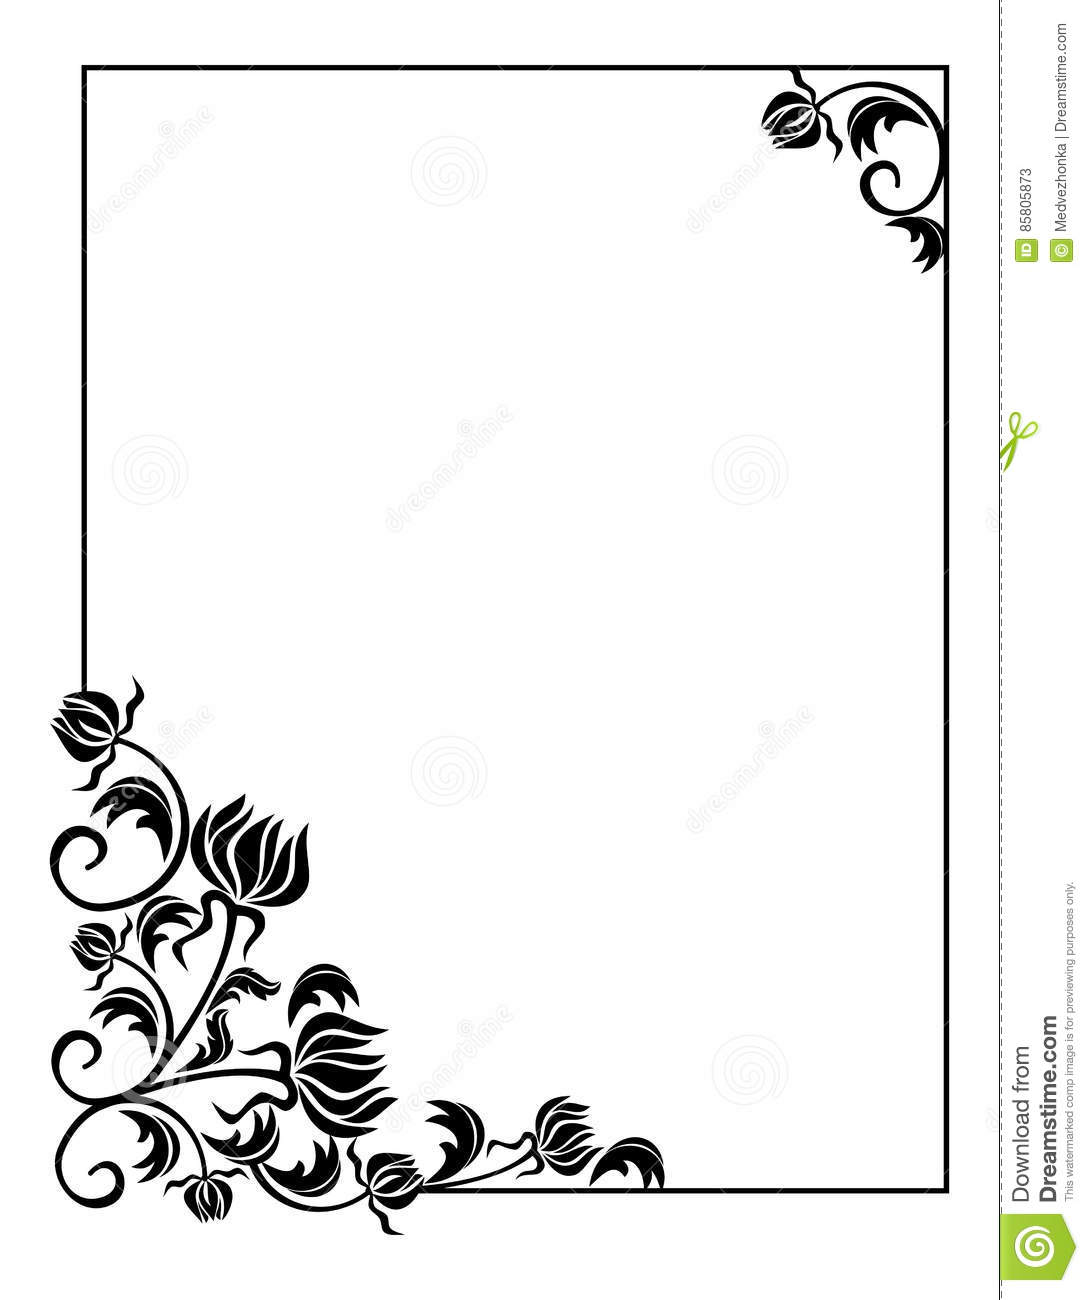 hight resolution of black and white frame with flowers silhouettes copy space raster clip art